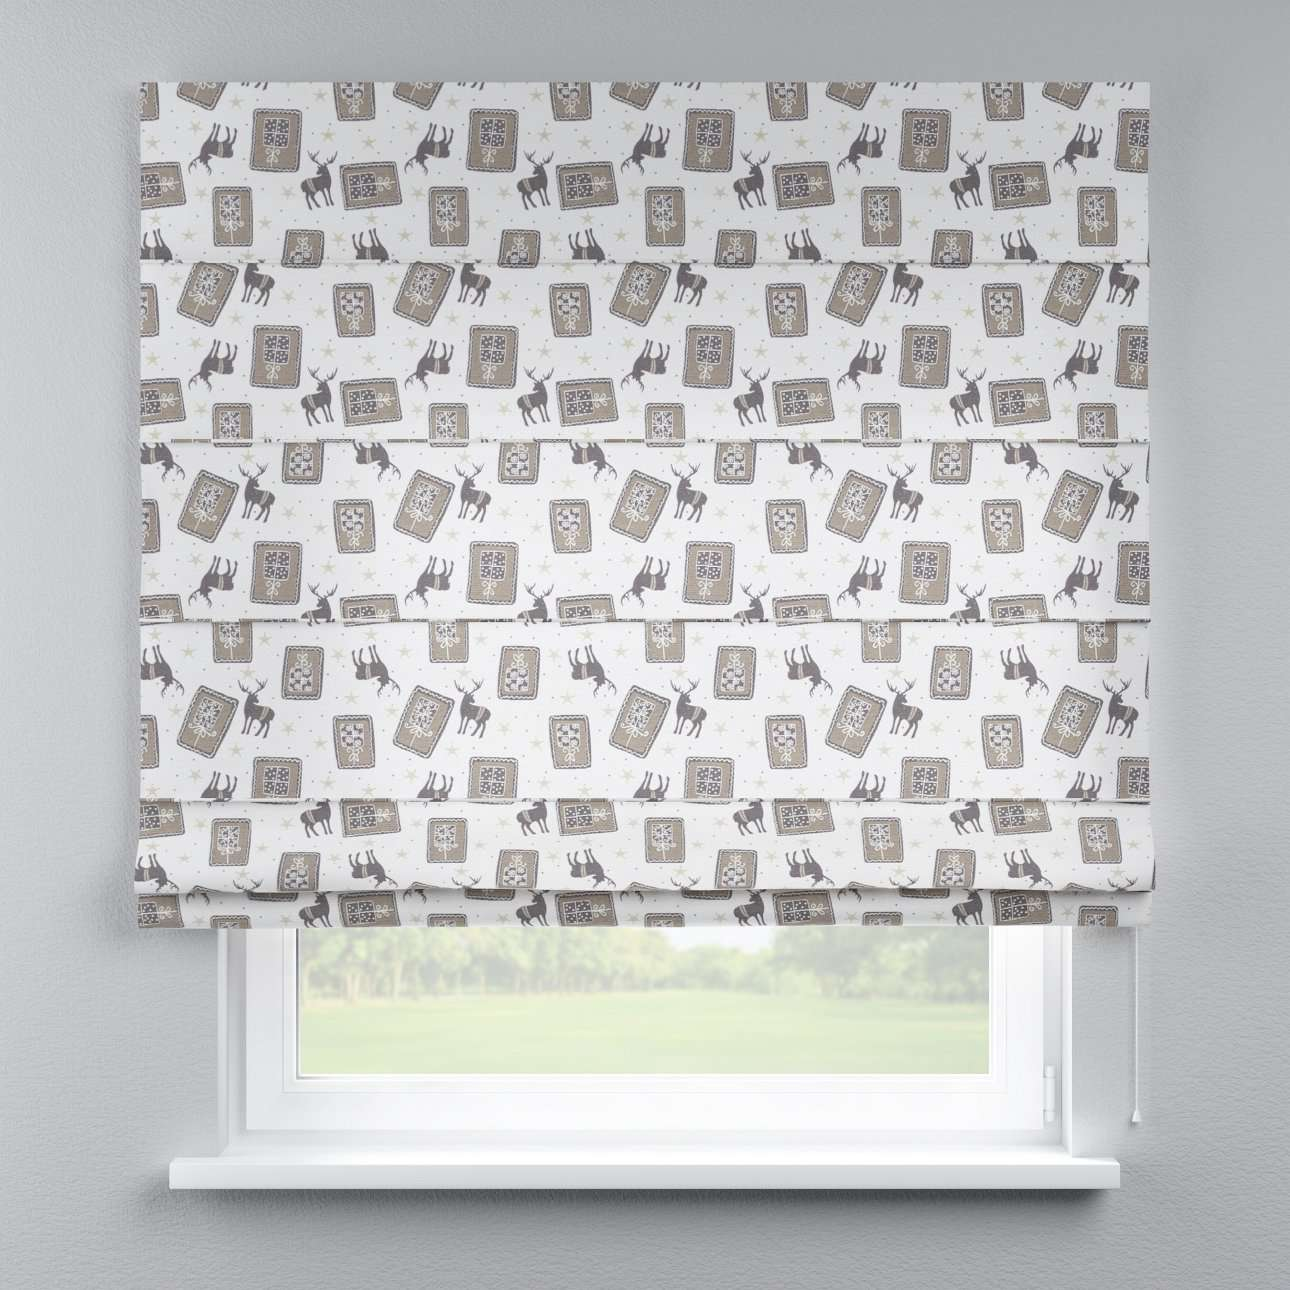 Capri roman blind 80 x 170 cm (31.5 x 67 inch) in collection Nordic, fabric: 630-10